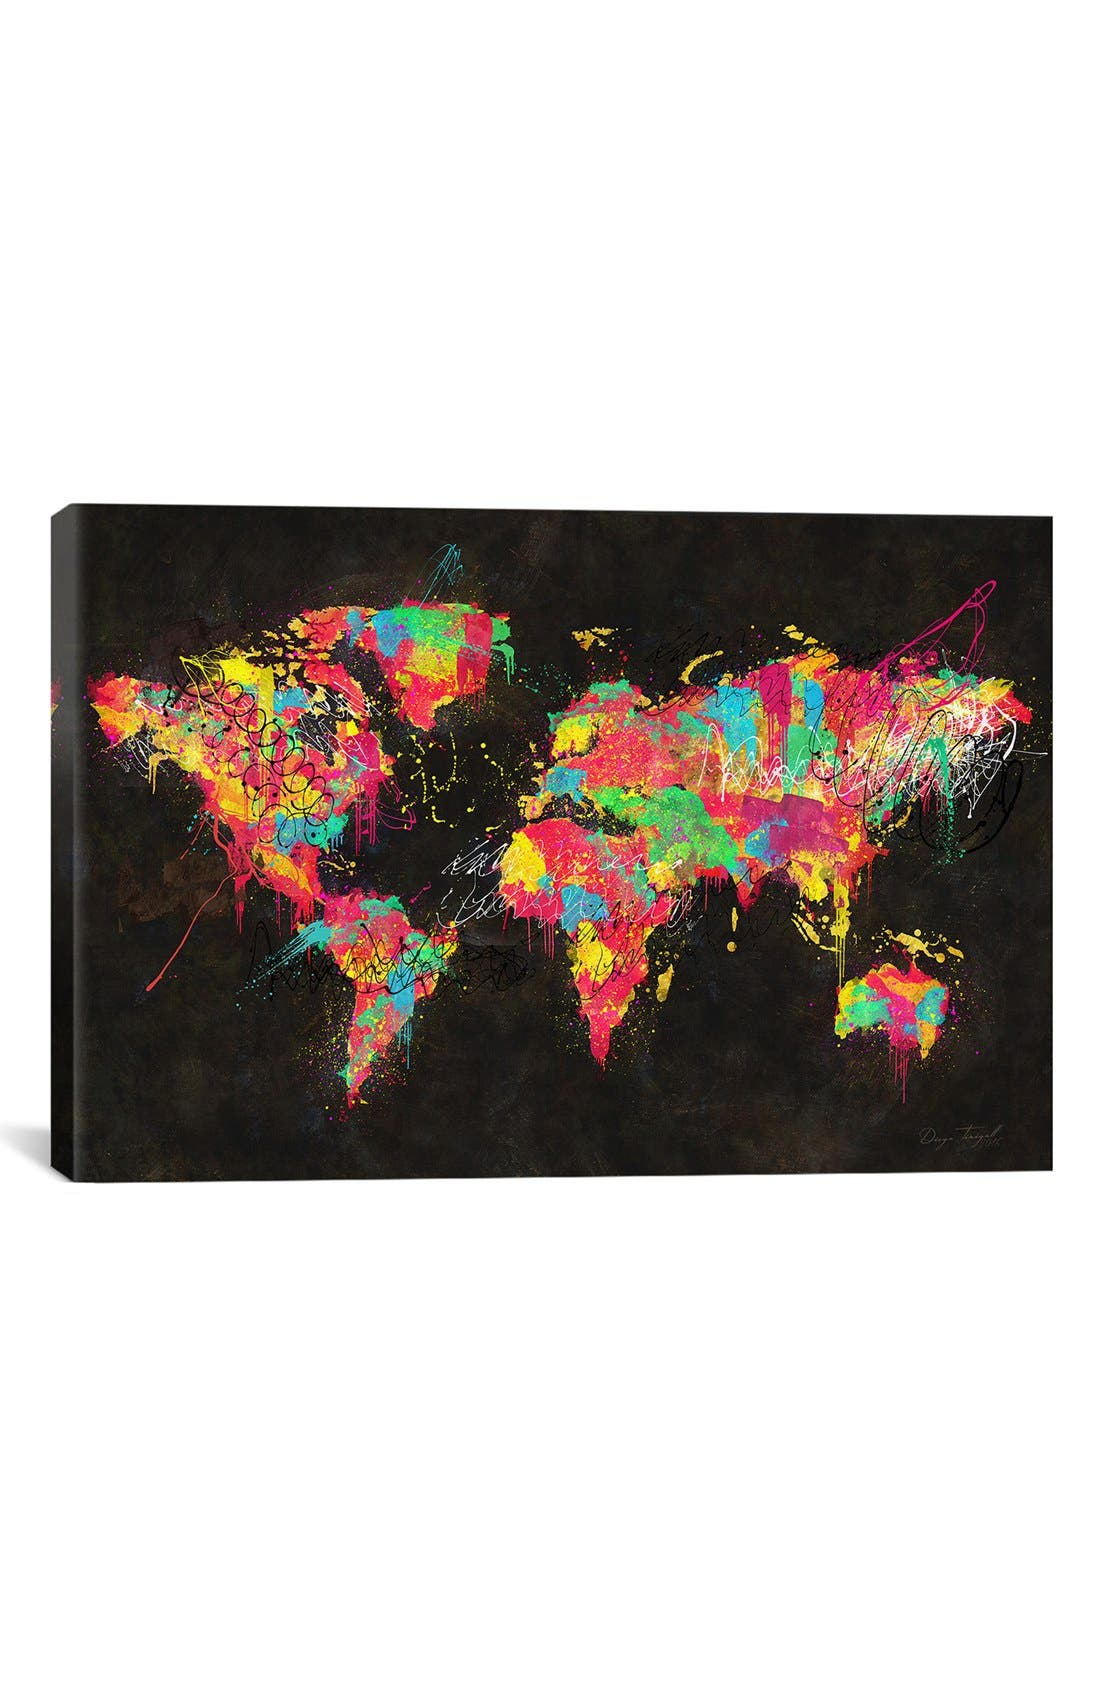 'Continents' Giclée Print Canvas Art,                             Main thumbnail 1, color,                             Black